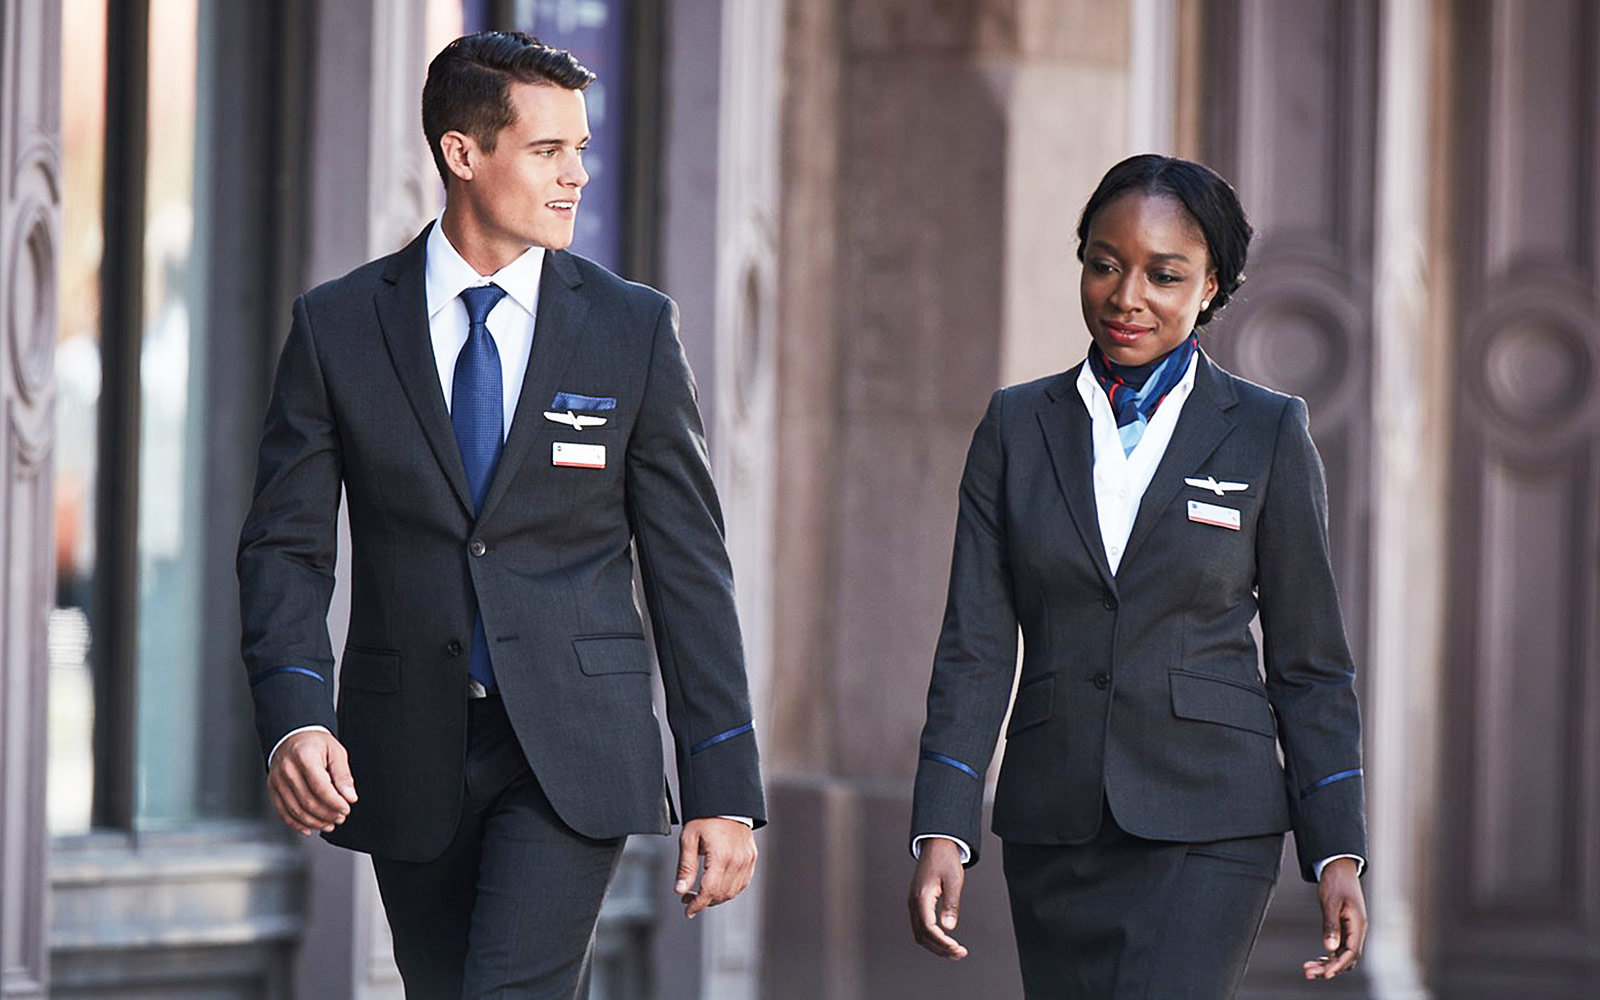 American Airlines uniform grievance